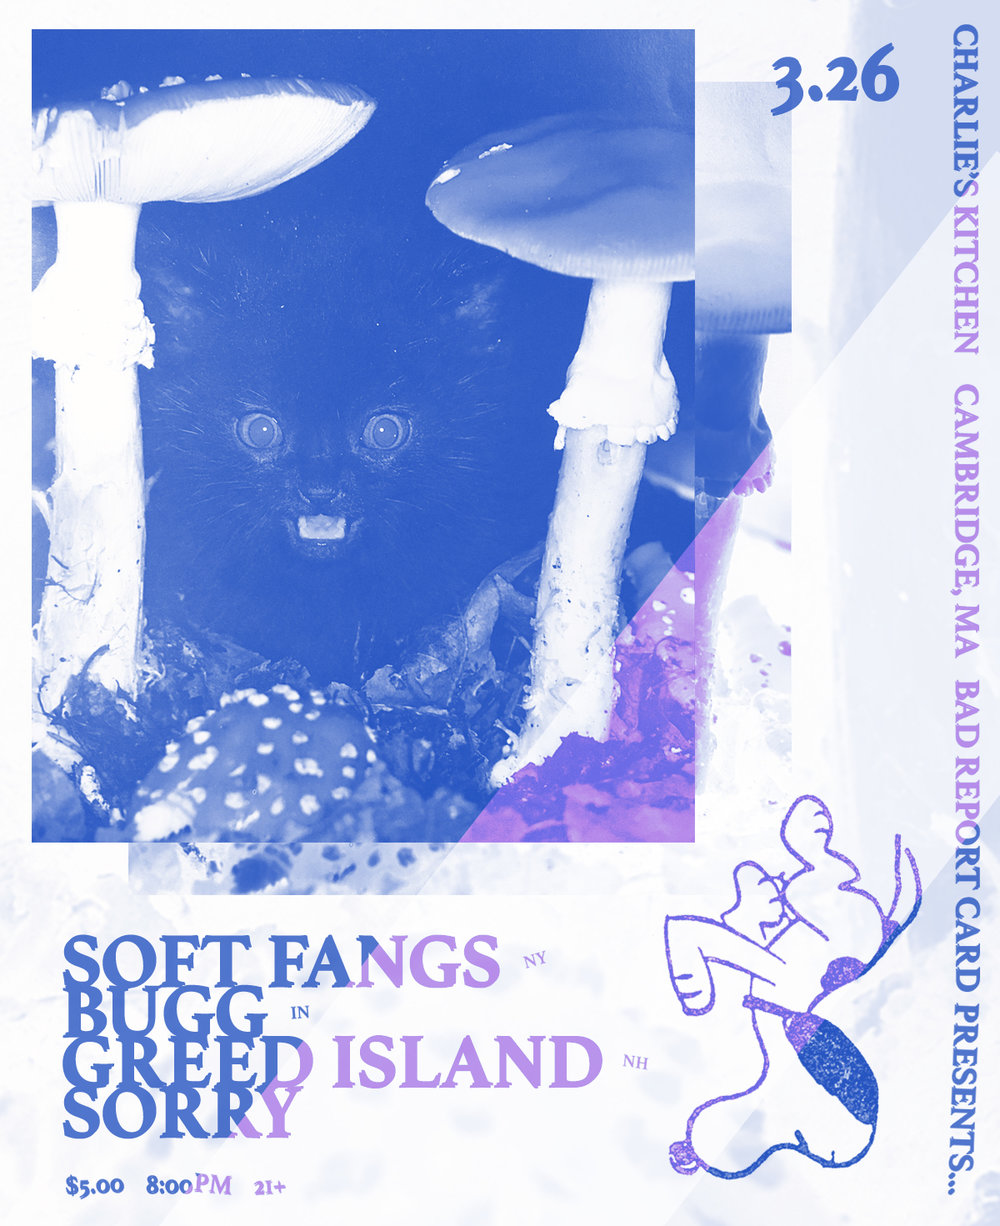 Flyer-SoftFangs326-BluePurpleStripe copy.jpg